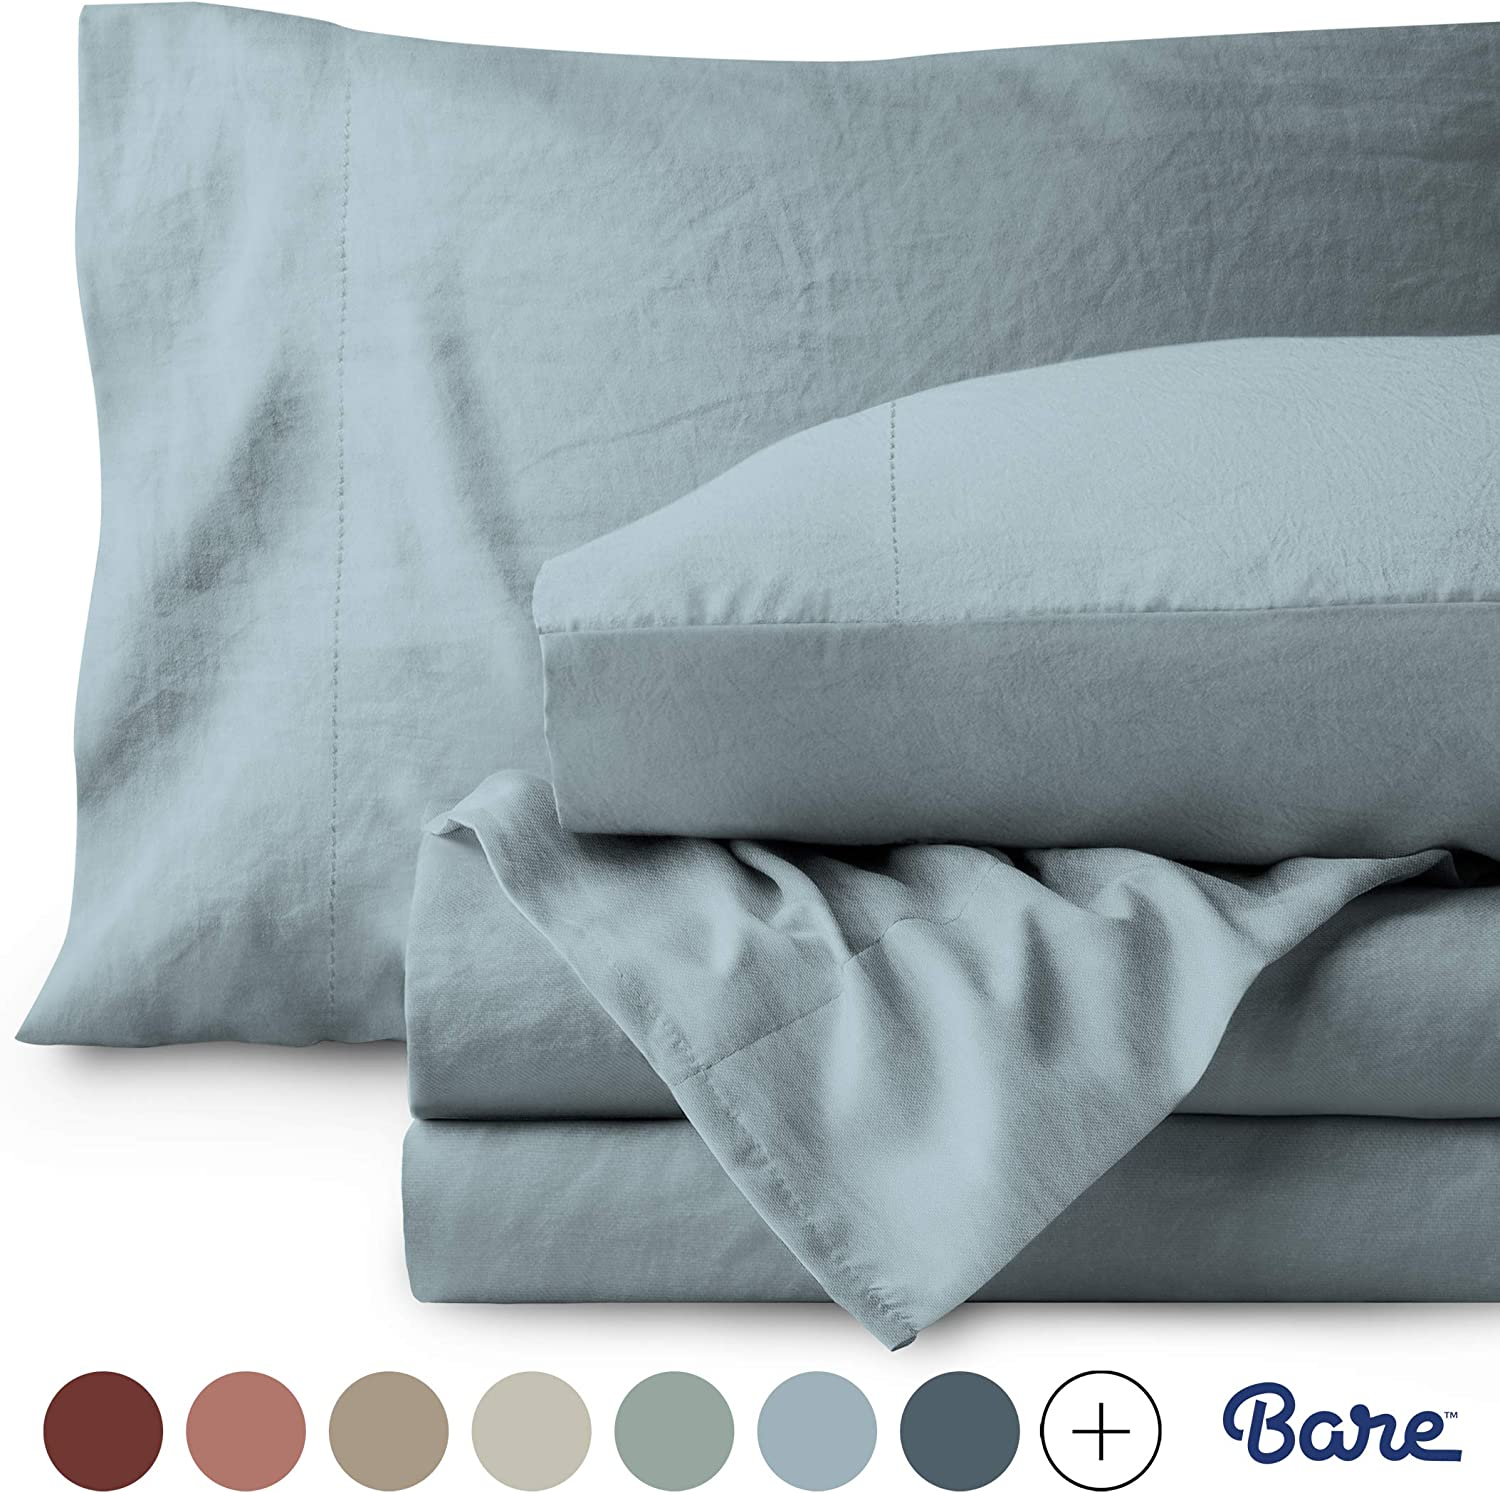 Bare Home Twin XL Sheet Set - College Dorm Size - Premium 1800 Ultra-Soft Microfiber Sheets Twin Extra Long - Double Brushed - Hypoallergenic - Stain Resistant (Twin XL, Sandwashed Dusty Blue)